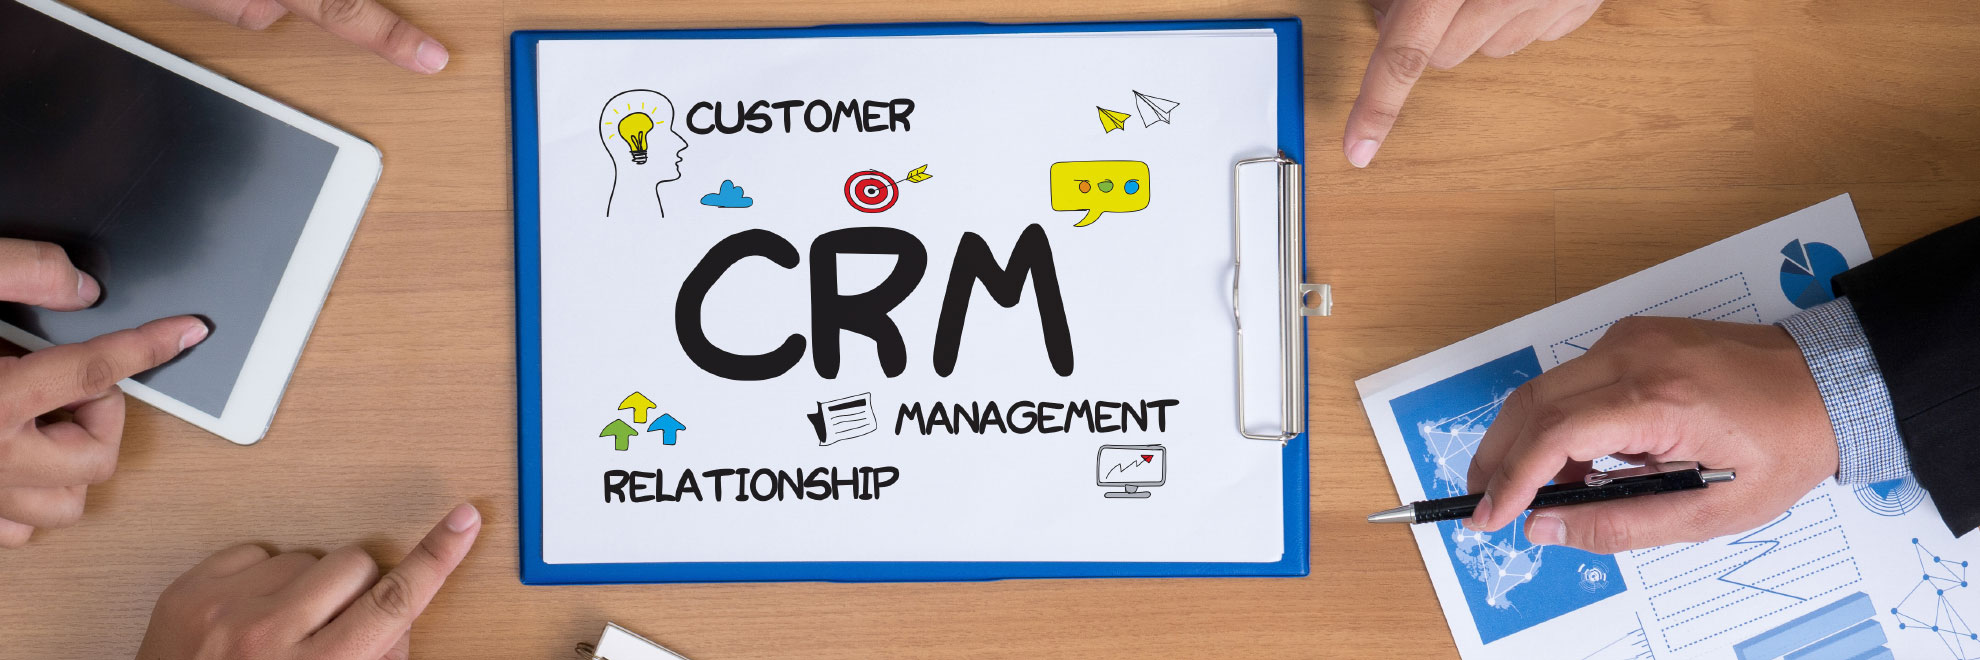 refsca-crm